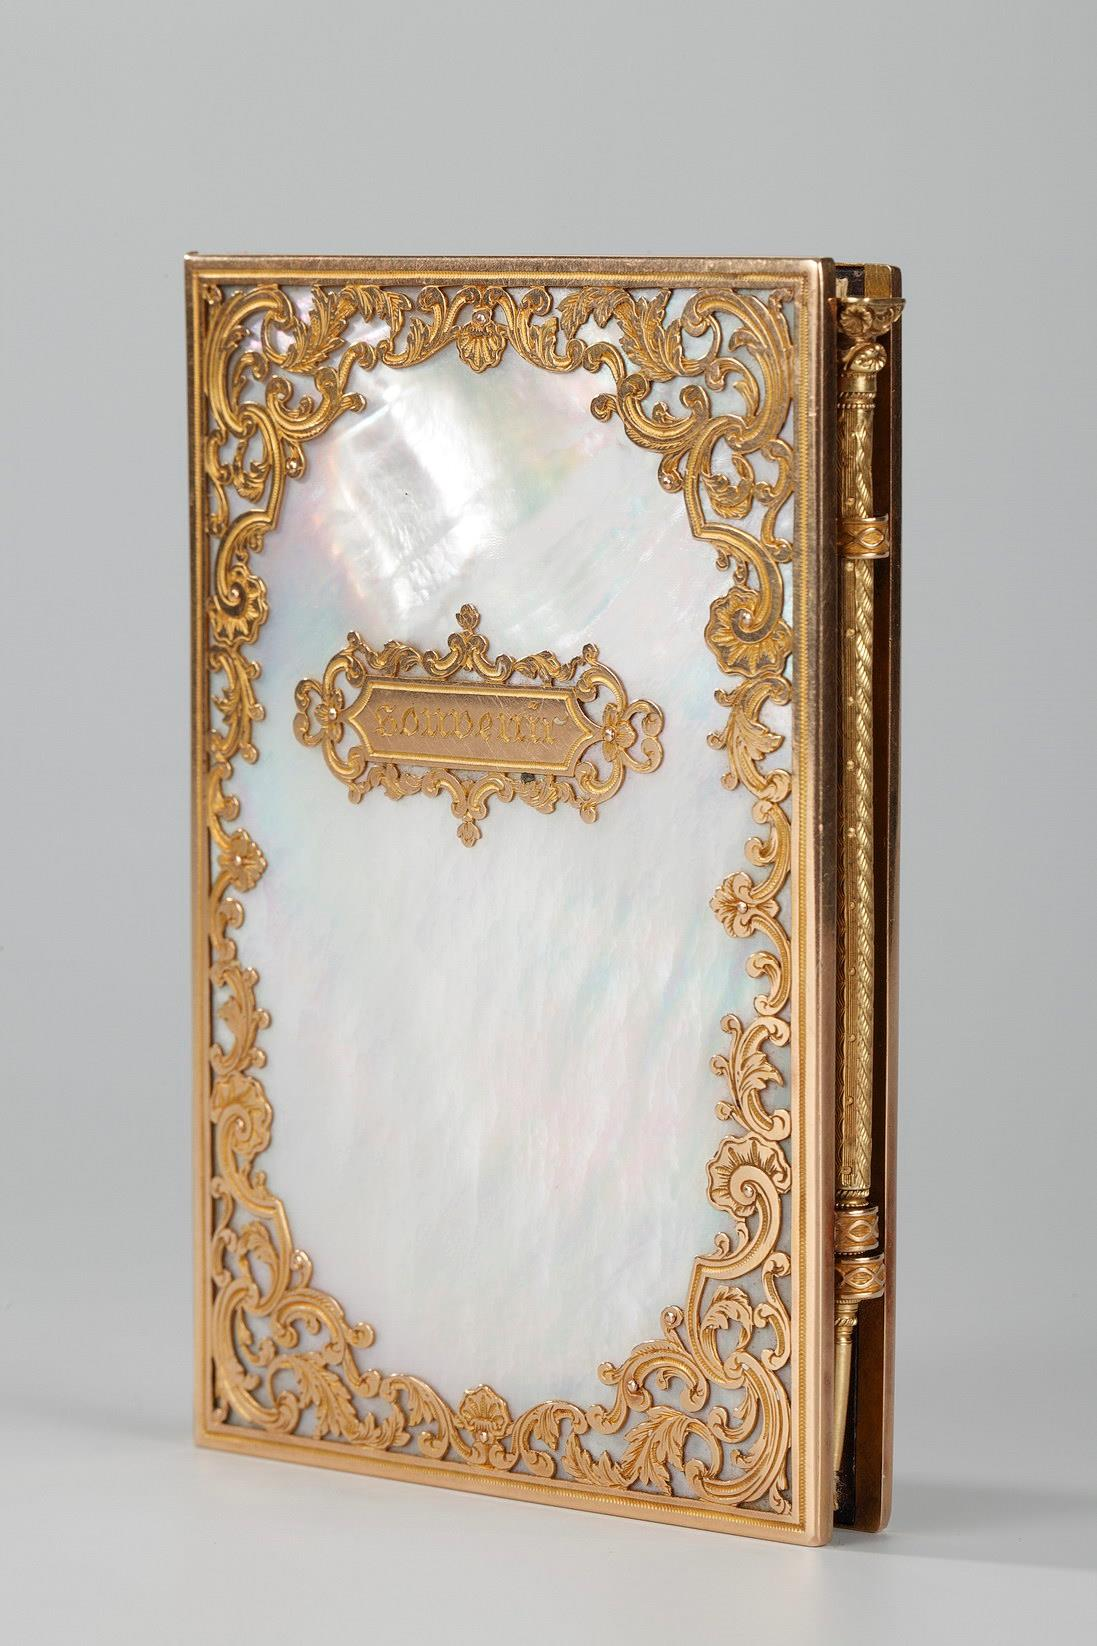 Charles X dance card in mother-of-pearl and gold. Restauration period.